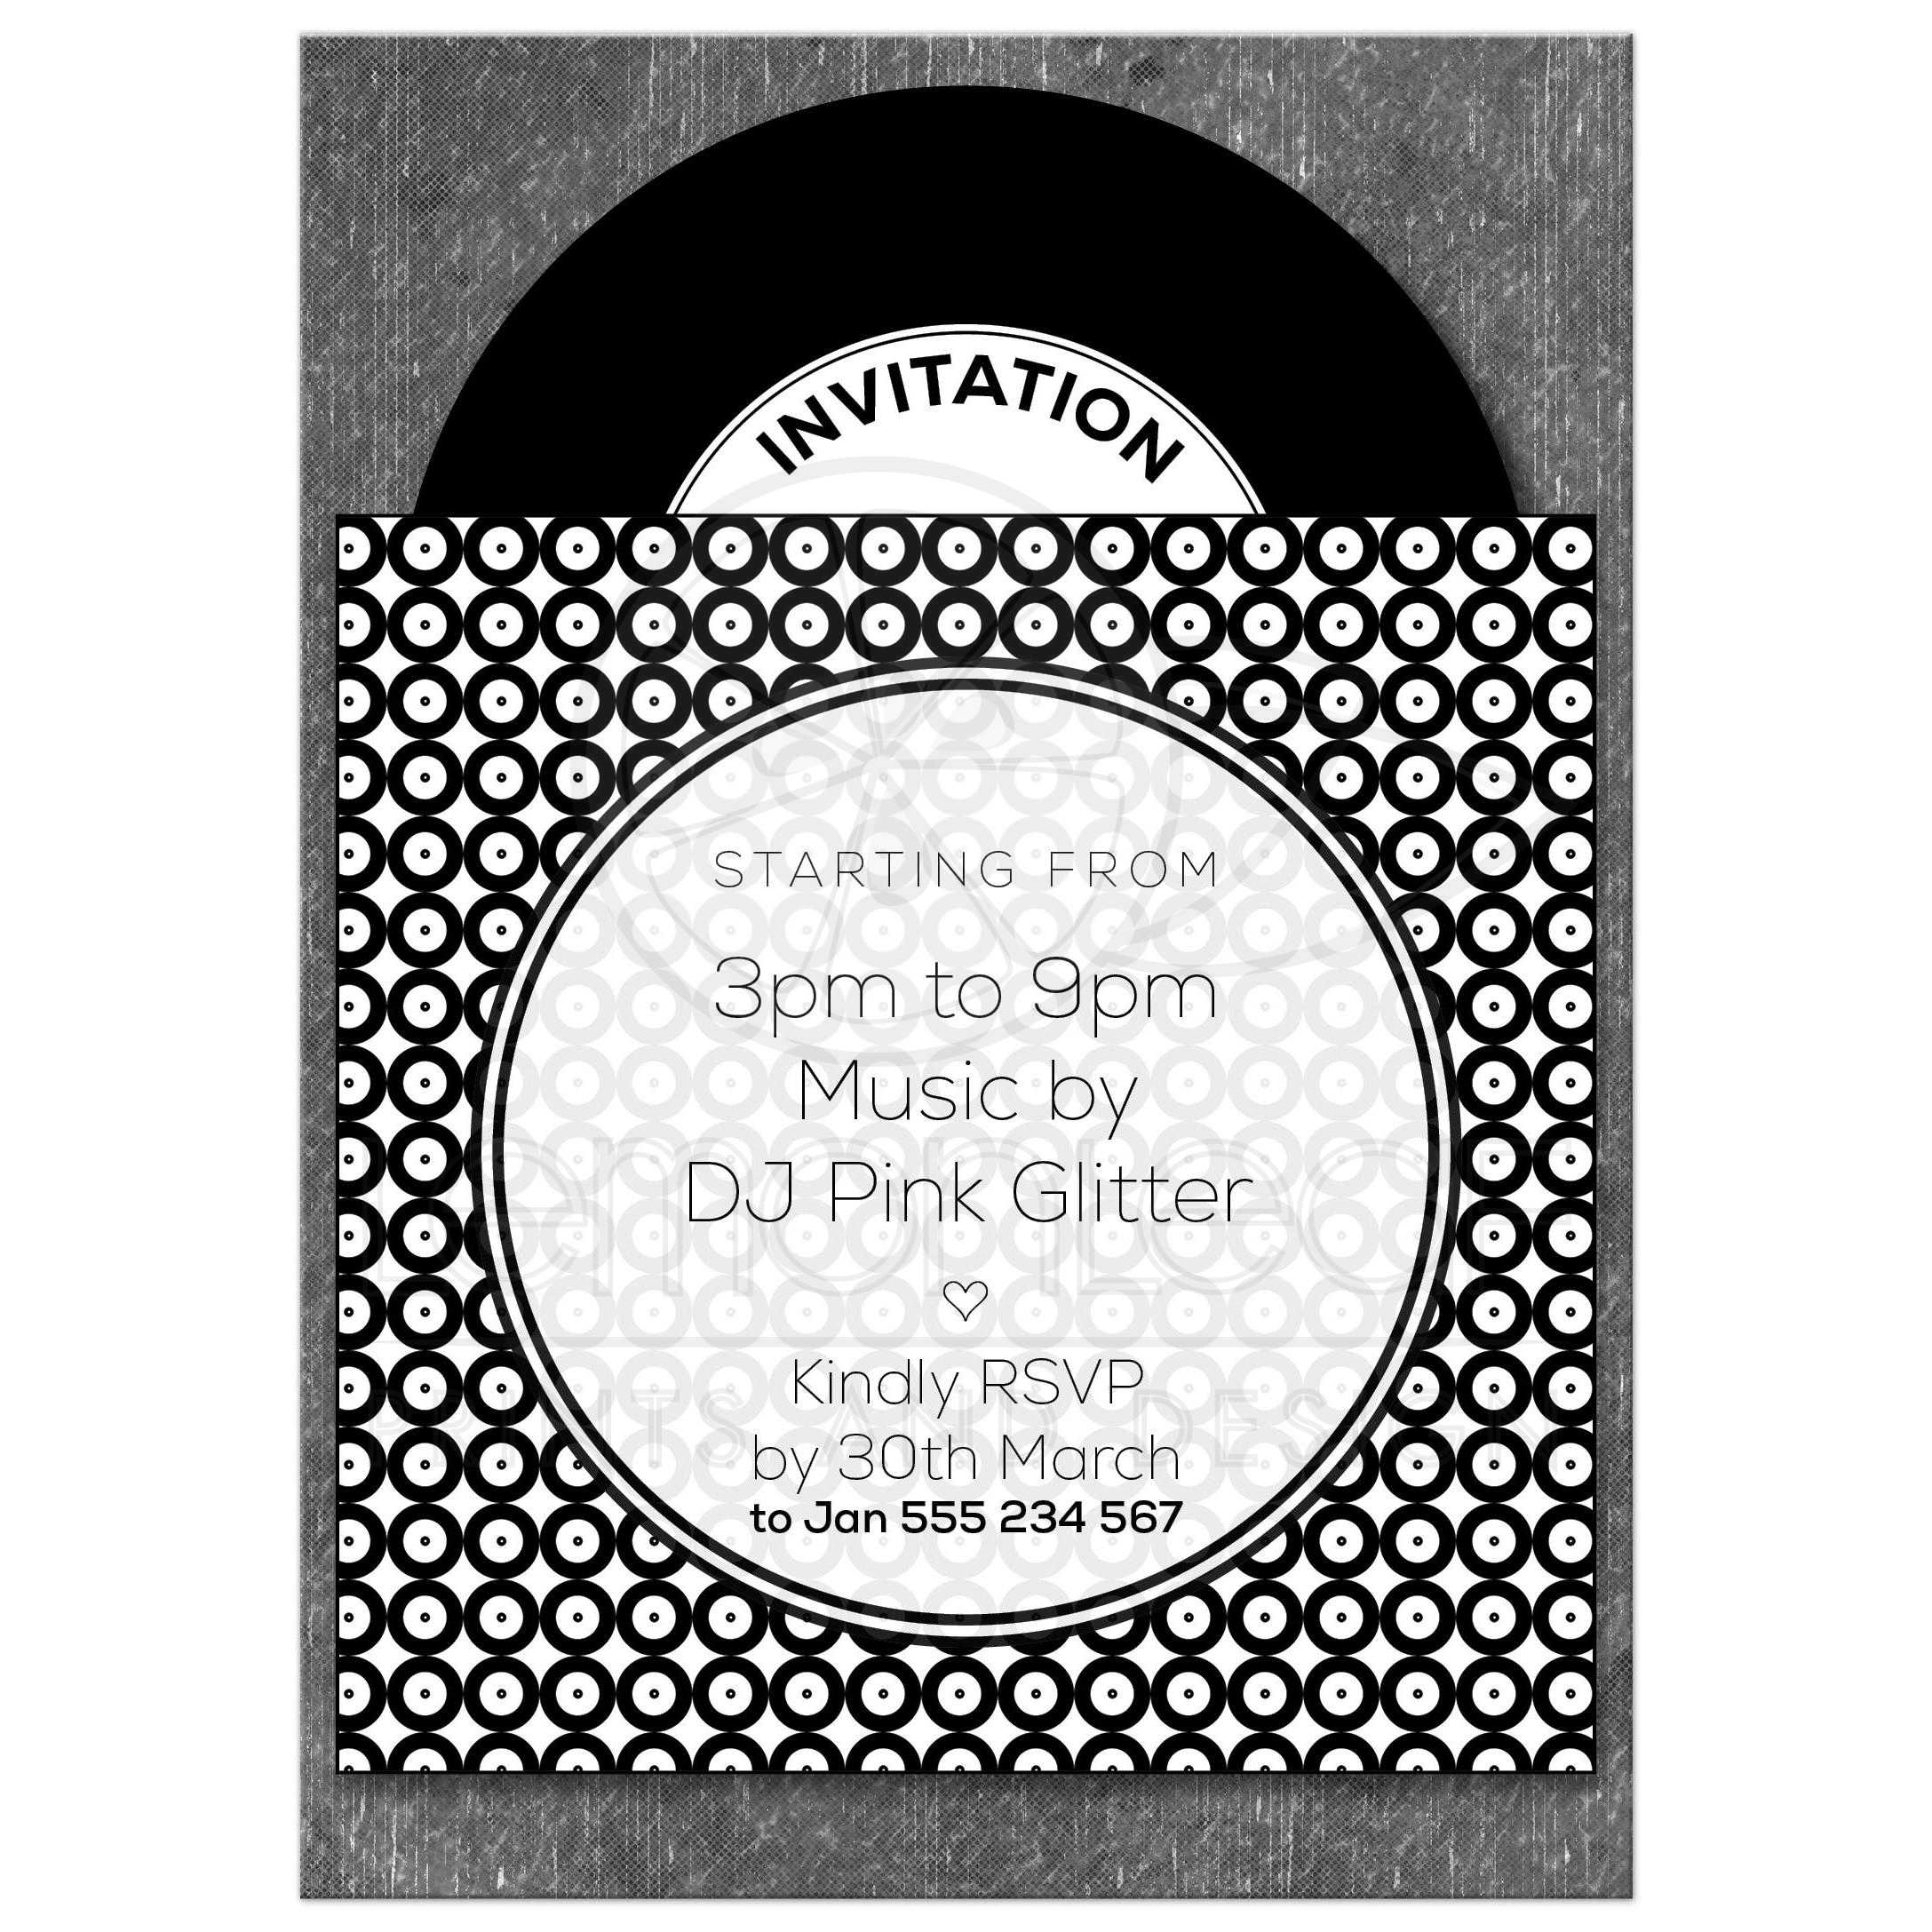 Vinyl Record Birthday Dance Party Invitation Black and White